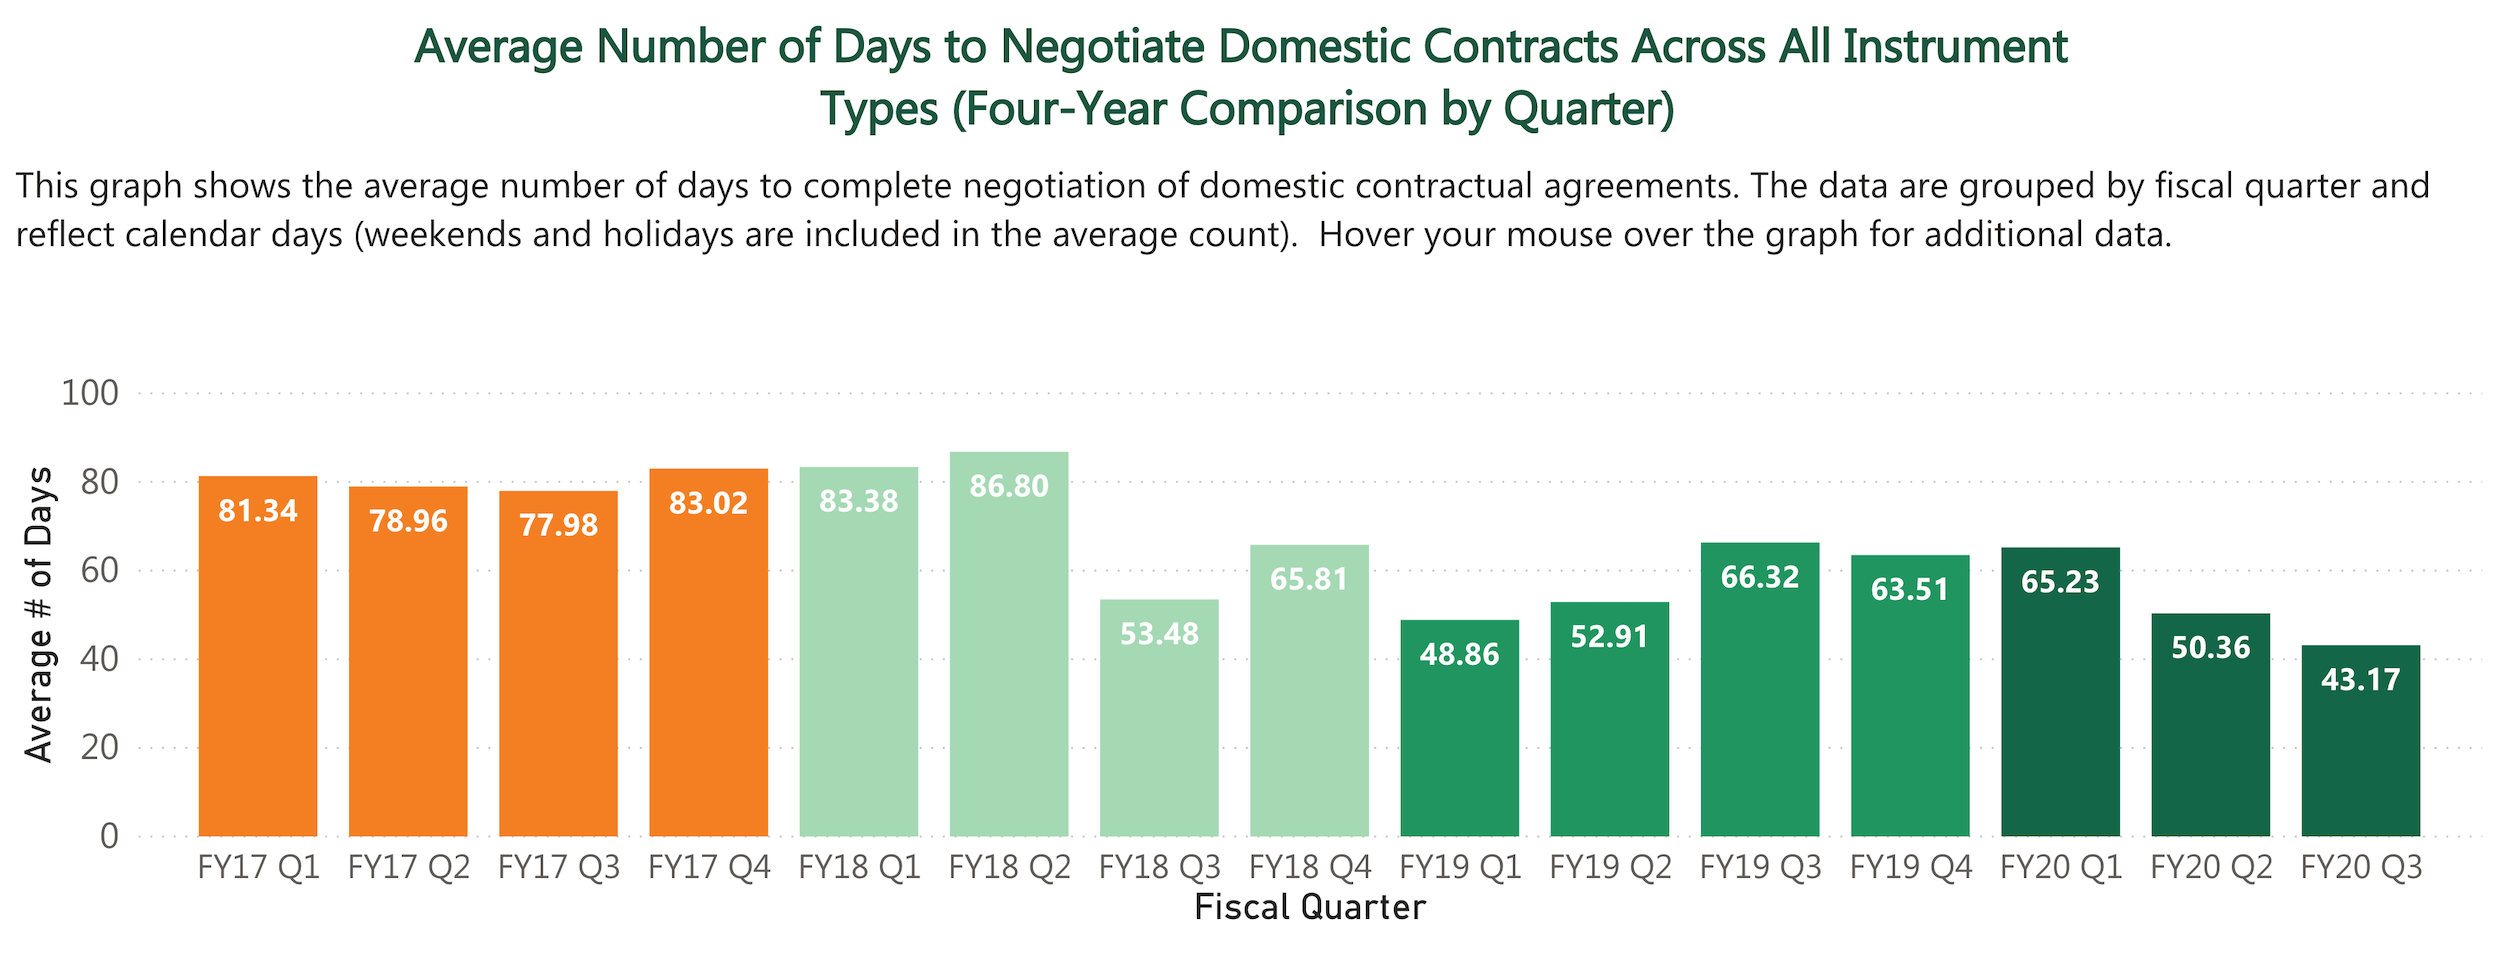 Average Number of Days to Negotiate Domestic Contracts Across all Instrument Types (Four-Year Comparison by Quarter)